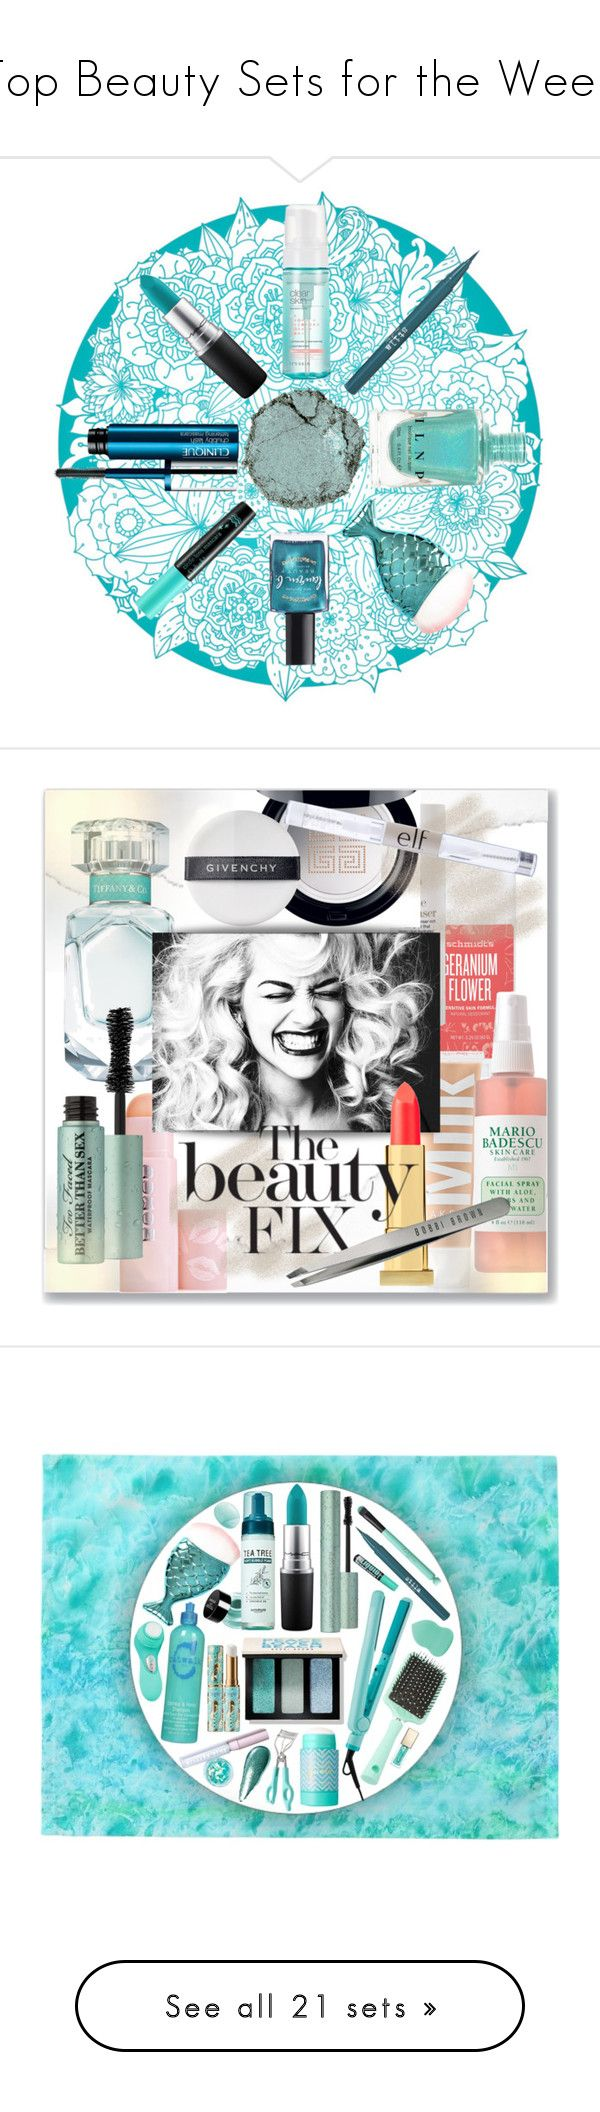 """""""Top Beauty Sets for the Week"""" by polyvore ❤ liked on Polyvore featuring beauty, MAC Cosmetics, Clinique, Stila, Lauren B. Beauty, Chantecaille, TONYMOLY, Schmidt's, This Works and MILK MAKEUP"""